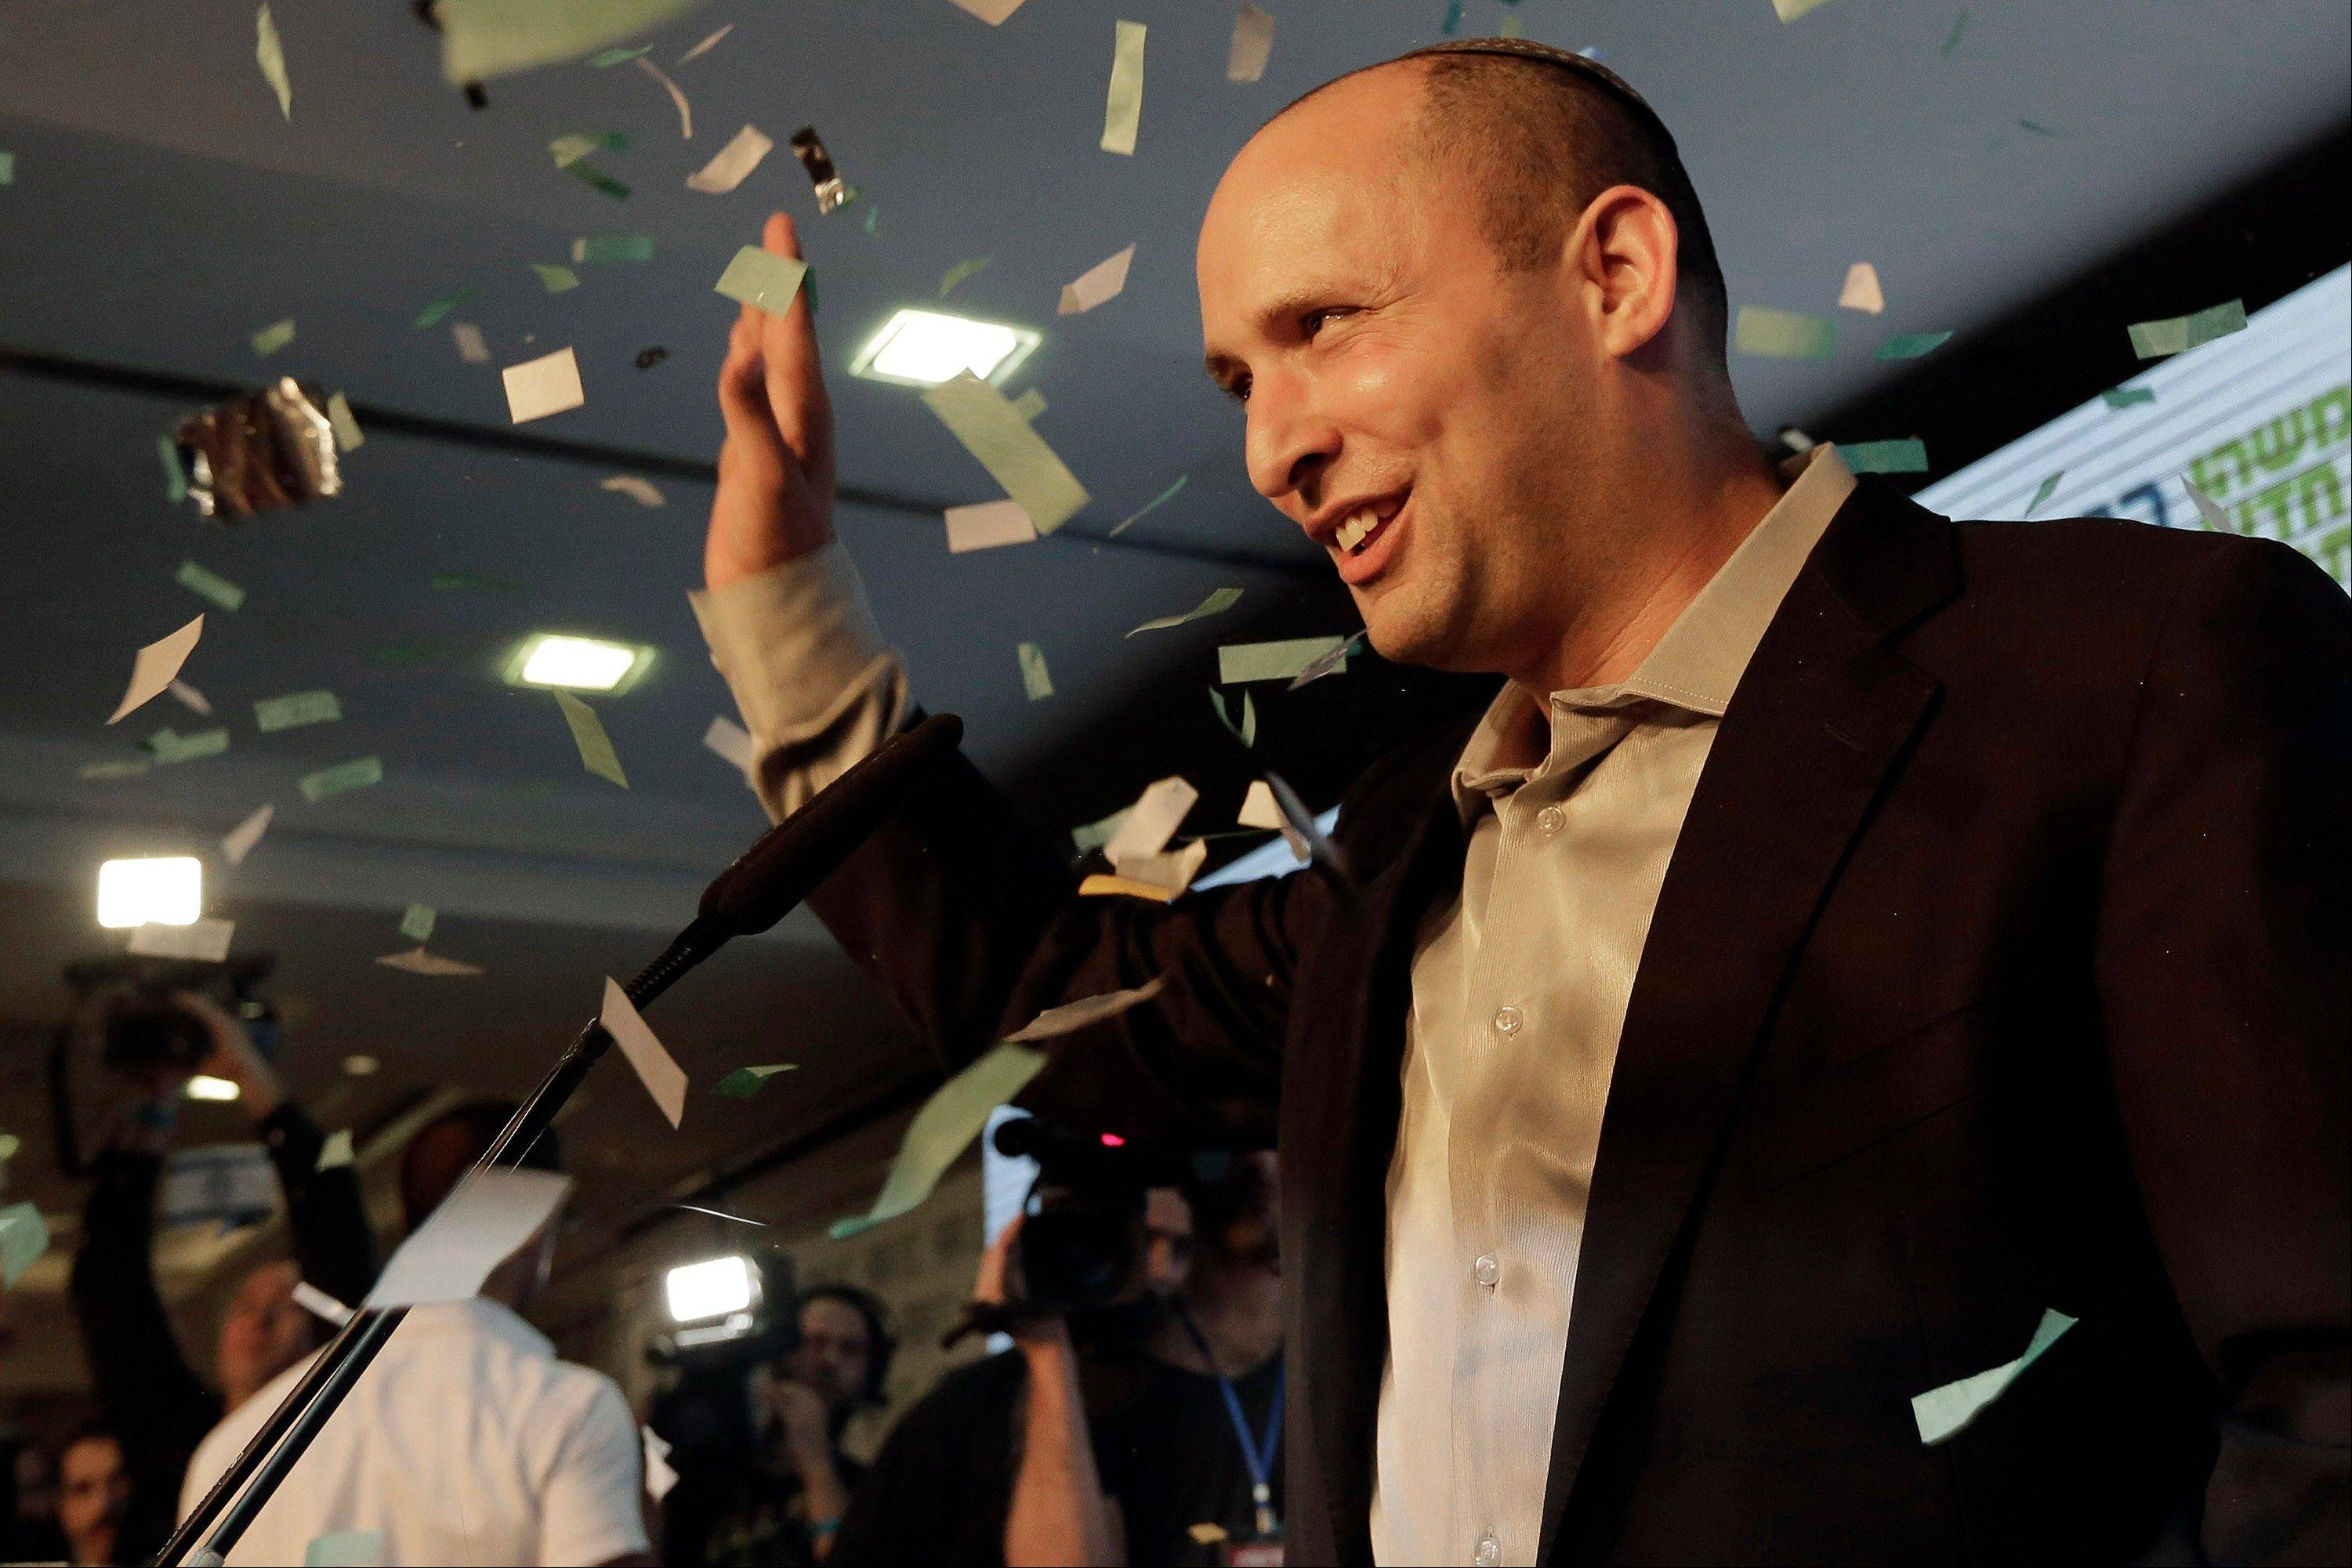 Naftali Bennett, head of Israel's Jewish Home party, greets his supporters at the party's headquarters in the city of Ramat Gan, Israel Tuesday, Jan. 22, 2013. Prime Minister Benjamin Netanyahu and his hard line allies fared worse than expected in a parliamentary election Tuesday, preliminary results showed, possibly forcing him to reach across the aisle and court a popular political newcomer to cobble together a new coalition.